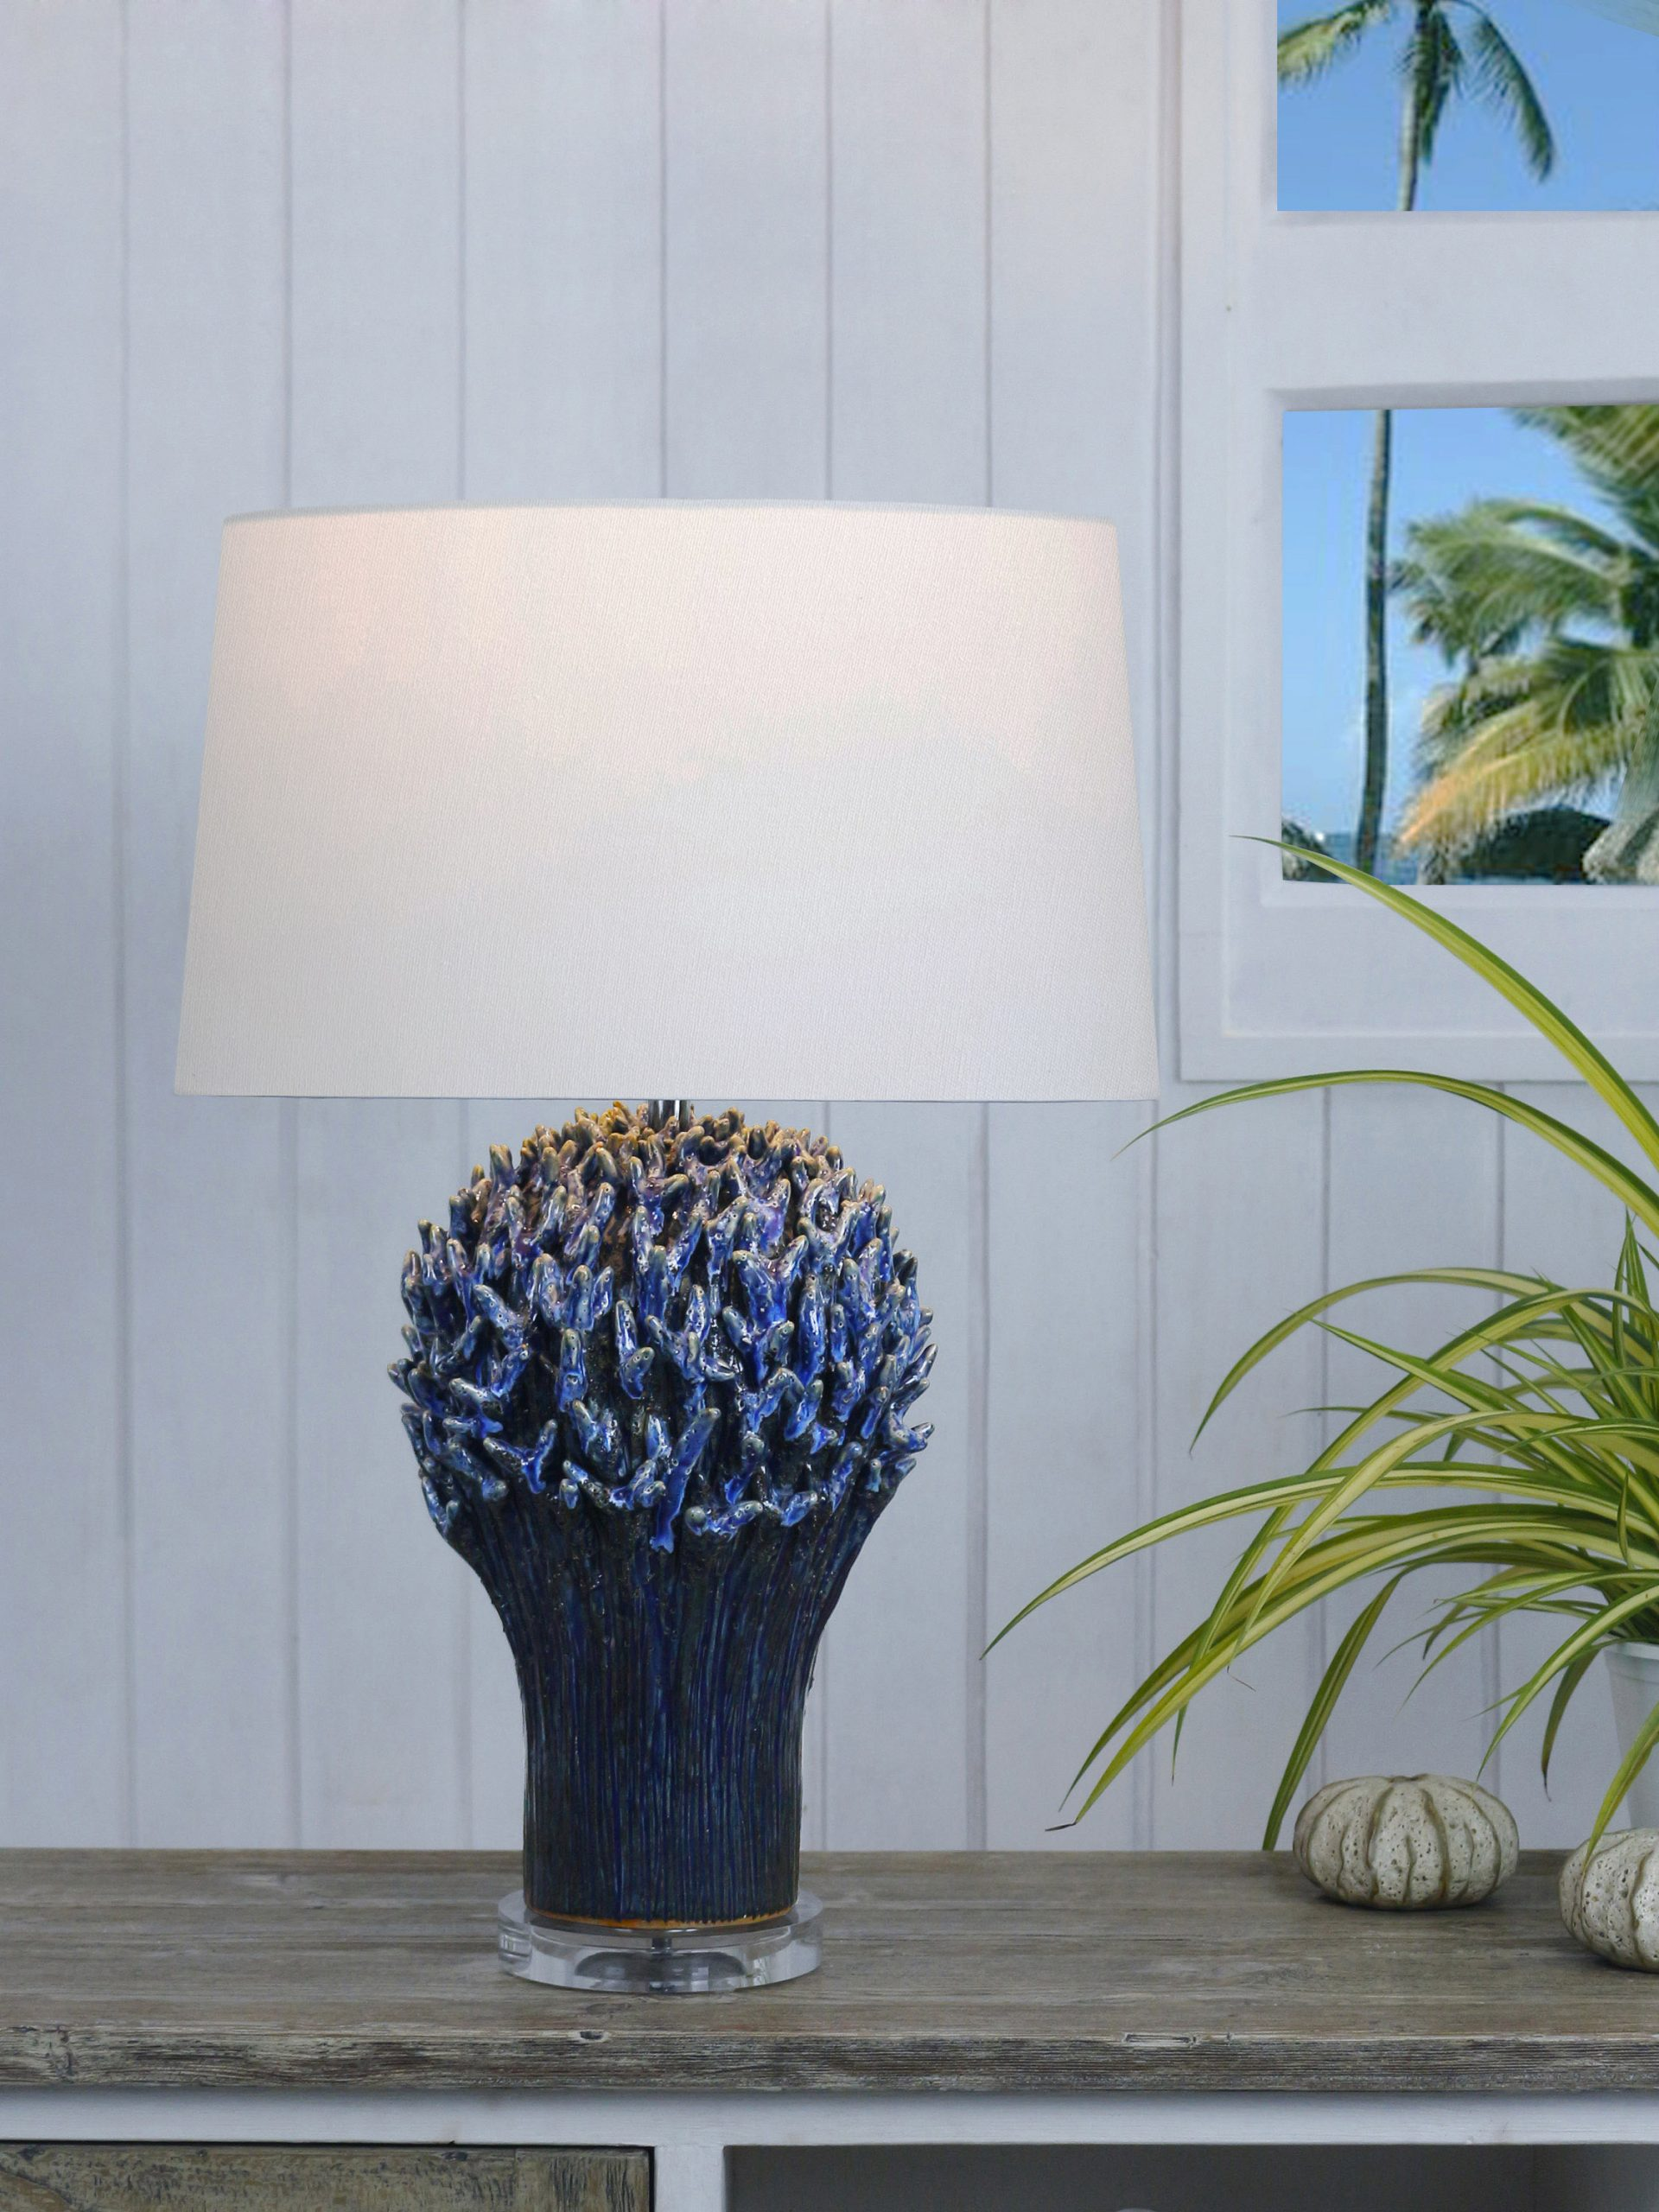 Staghorn coral table lamp product photo #1